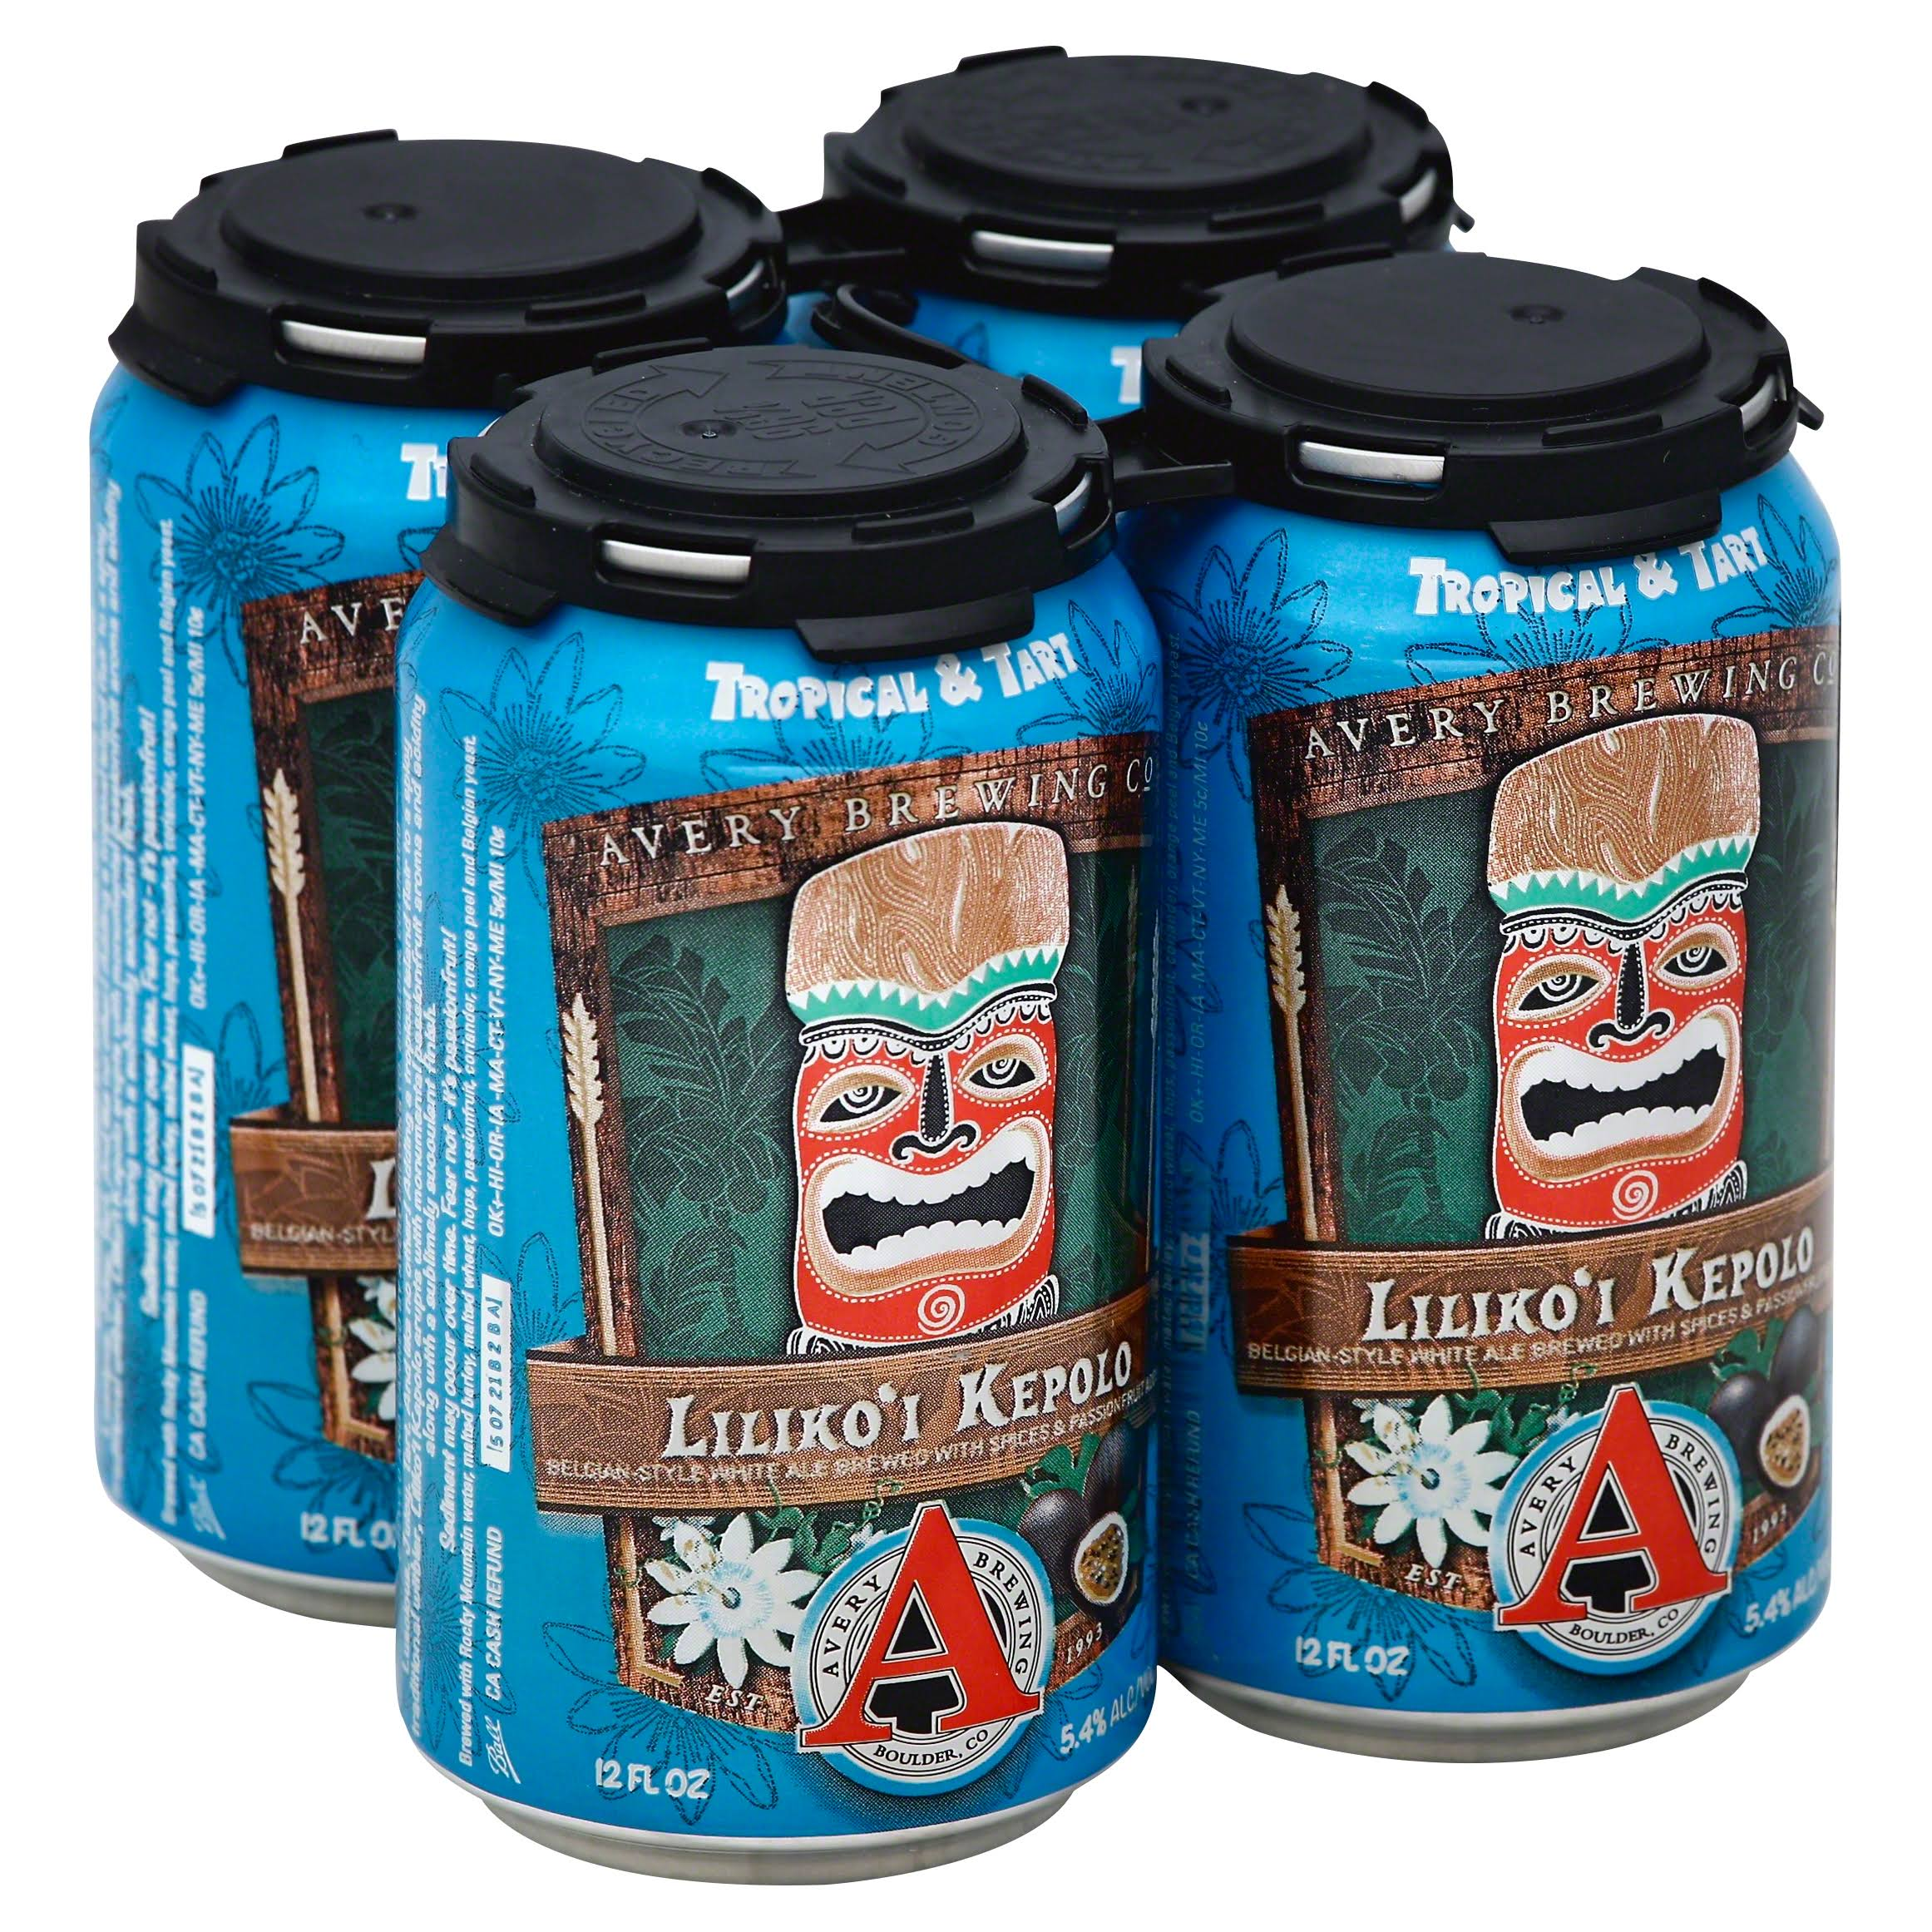 Avery Brewing Ale, Liliko'i Kepolo - 6 pack, 12 fl oz cans